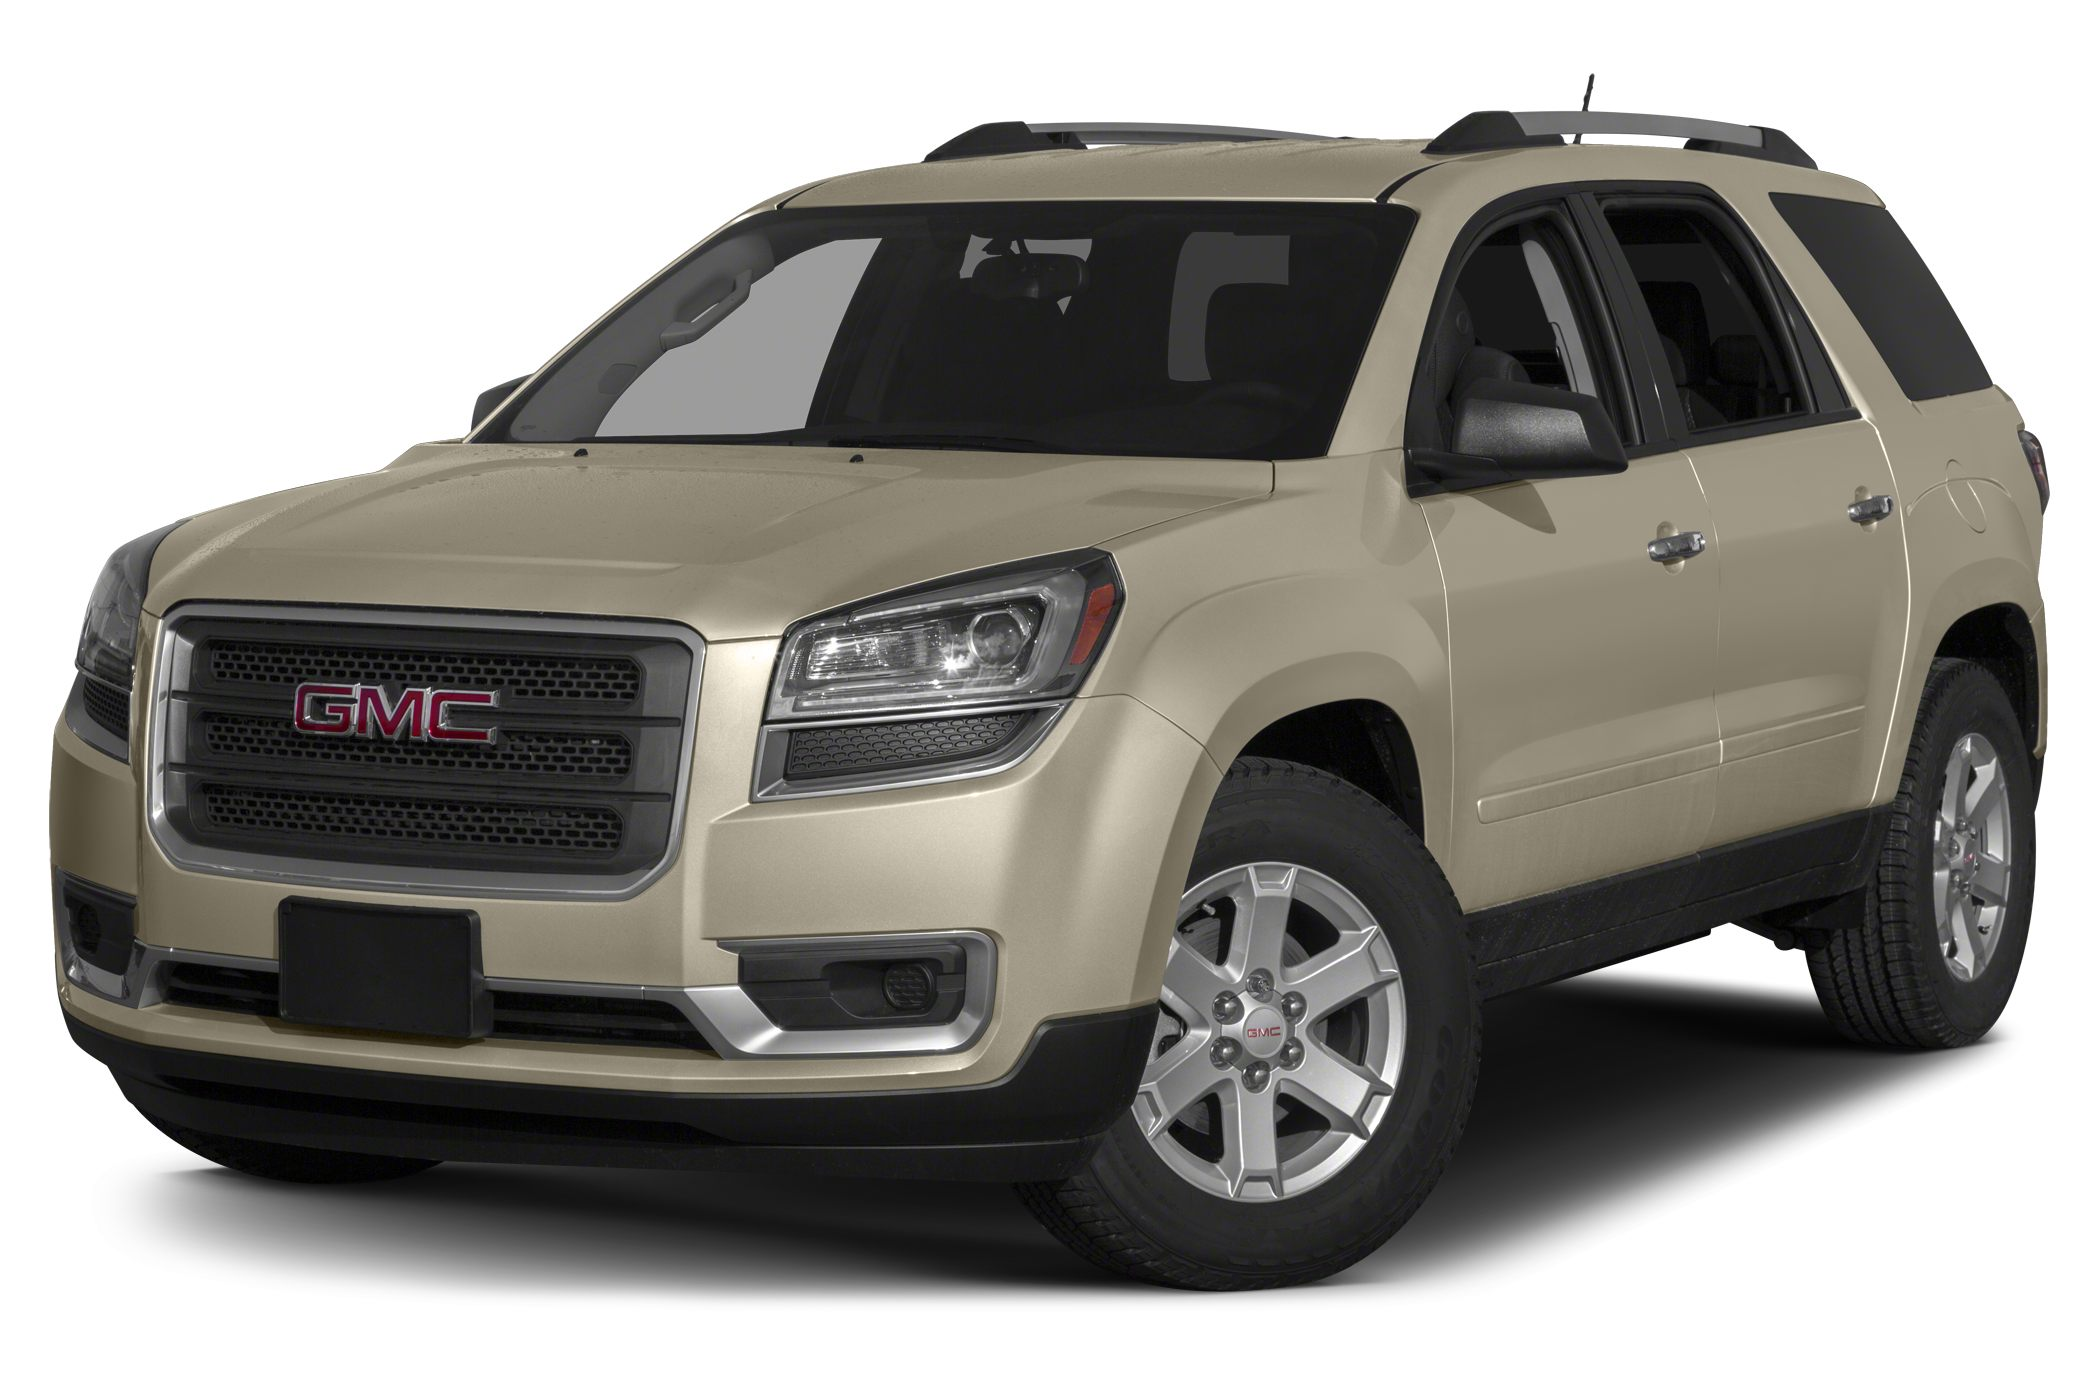 2015 GMC Acadia SLT-1 SUV for sale in Bossier City for $41,307 with 5 miles